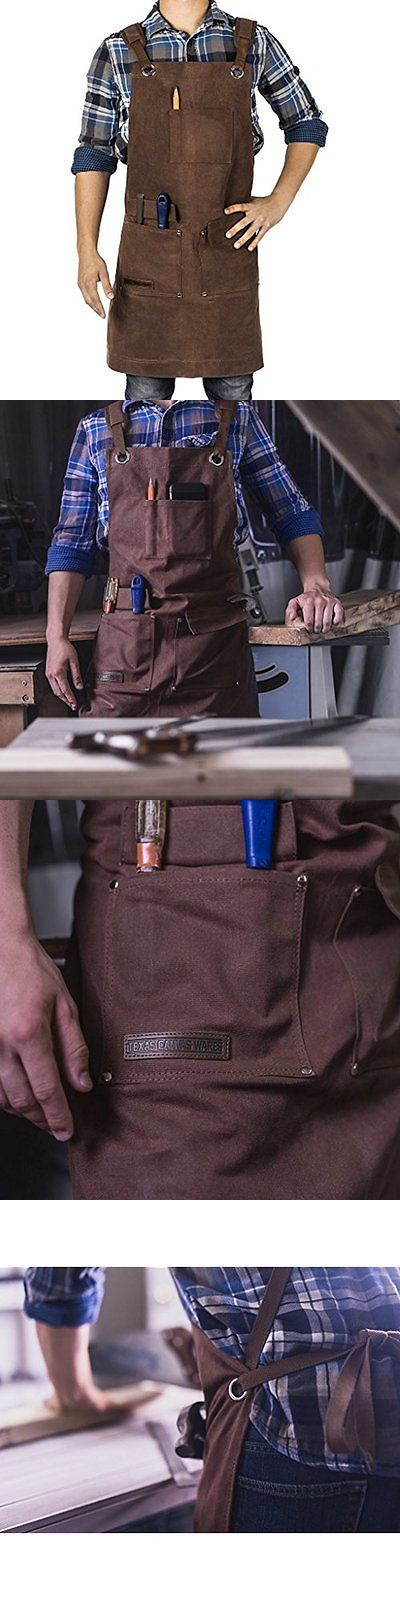 Aprons 175628: Waxed Canvas Heavy Duty Shop Apron With Pockets Adjustable Up To Xxl For Men And -> BUY IT NOW ONLY: $50.59 on eBay!